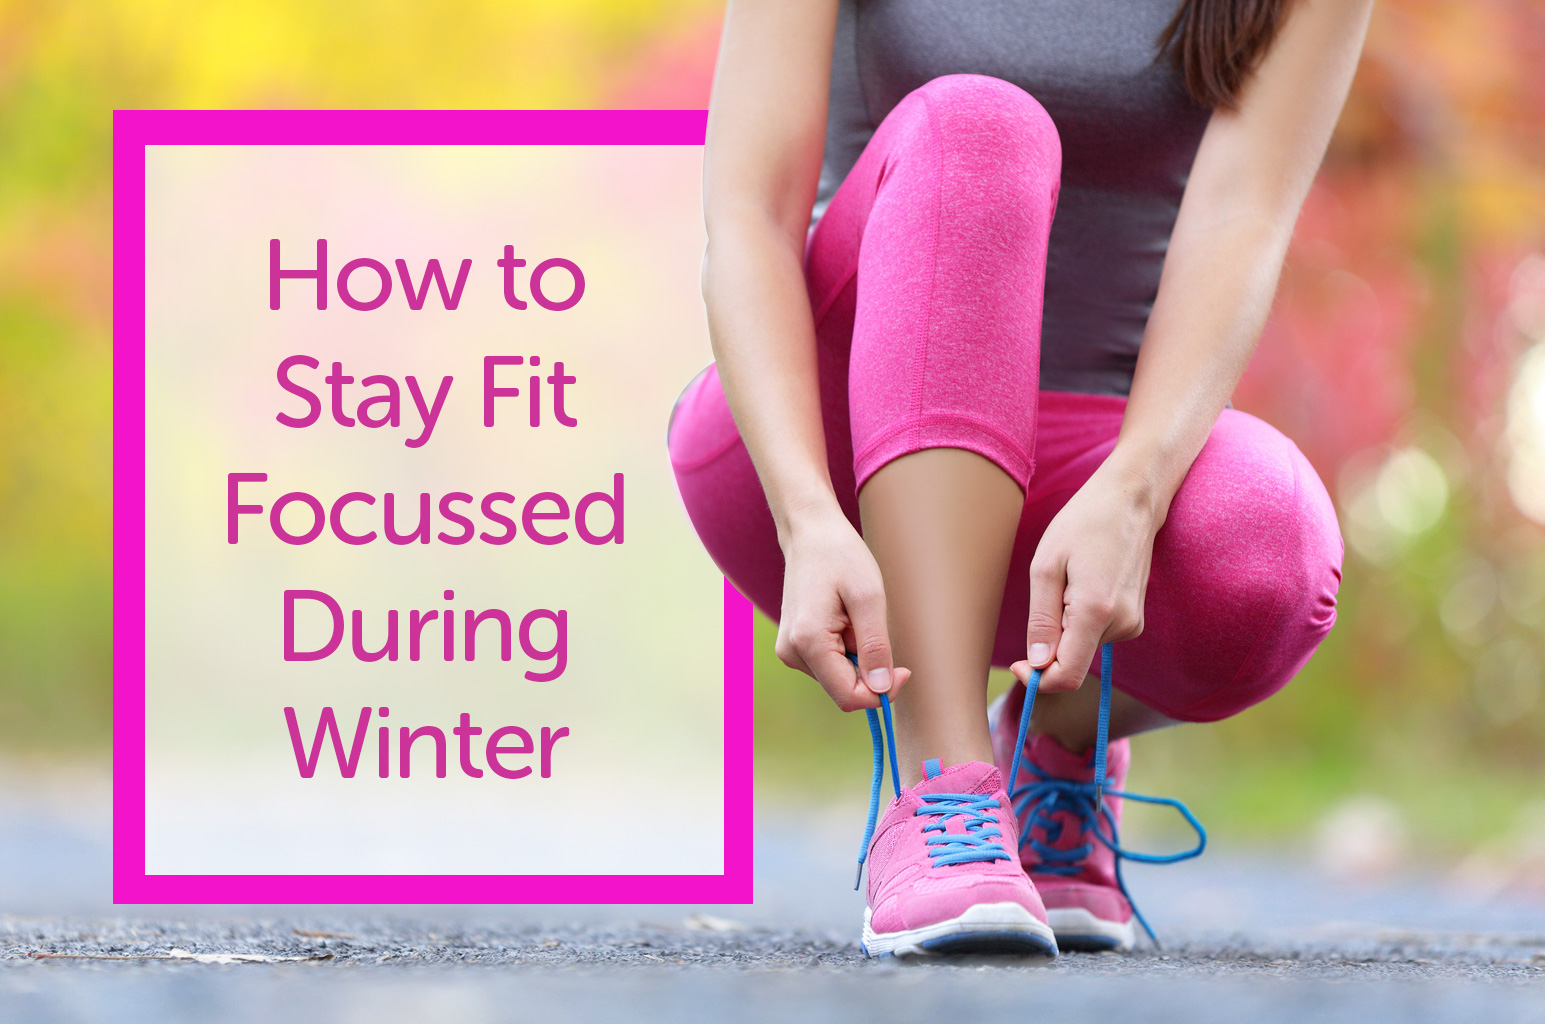 How to Stay Fit Focussed During Winter